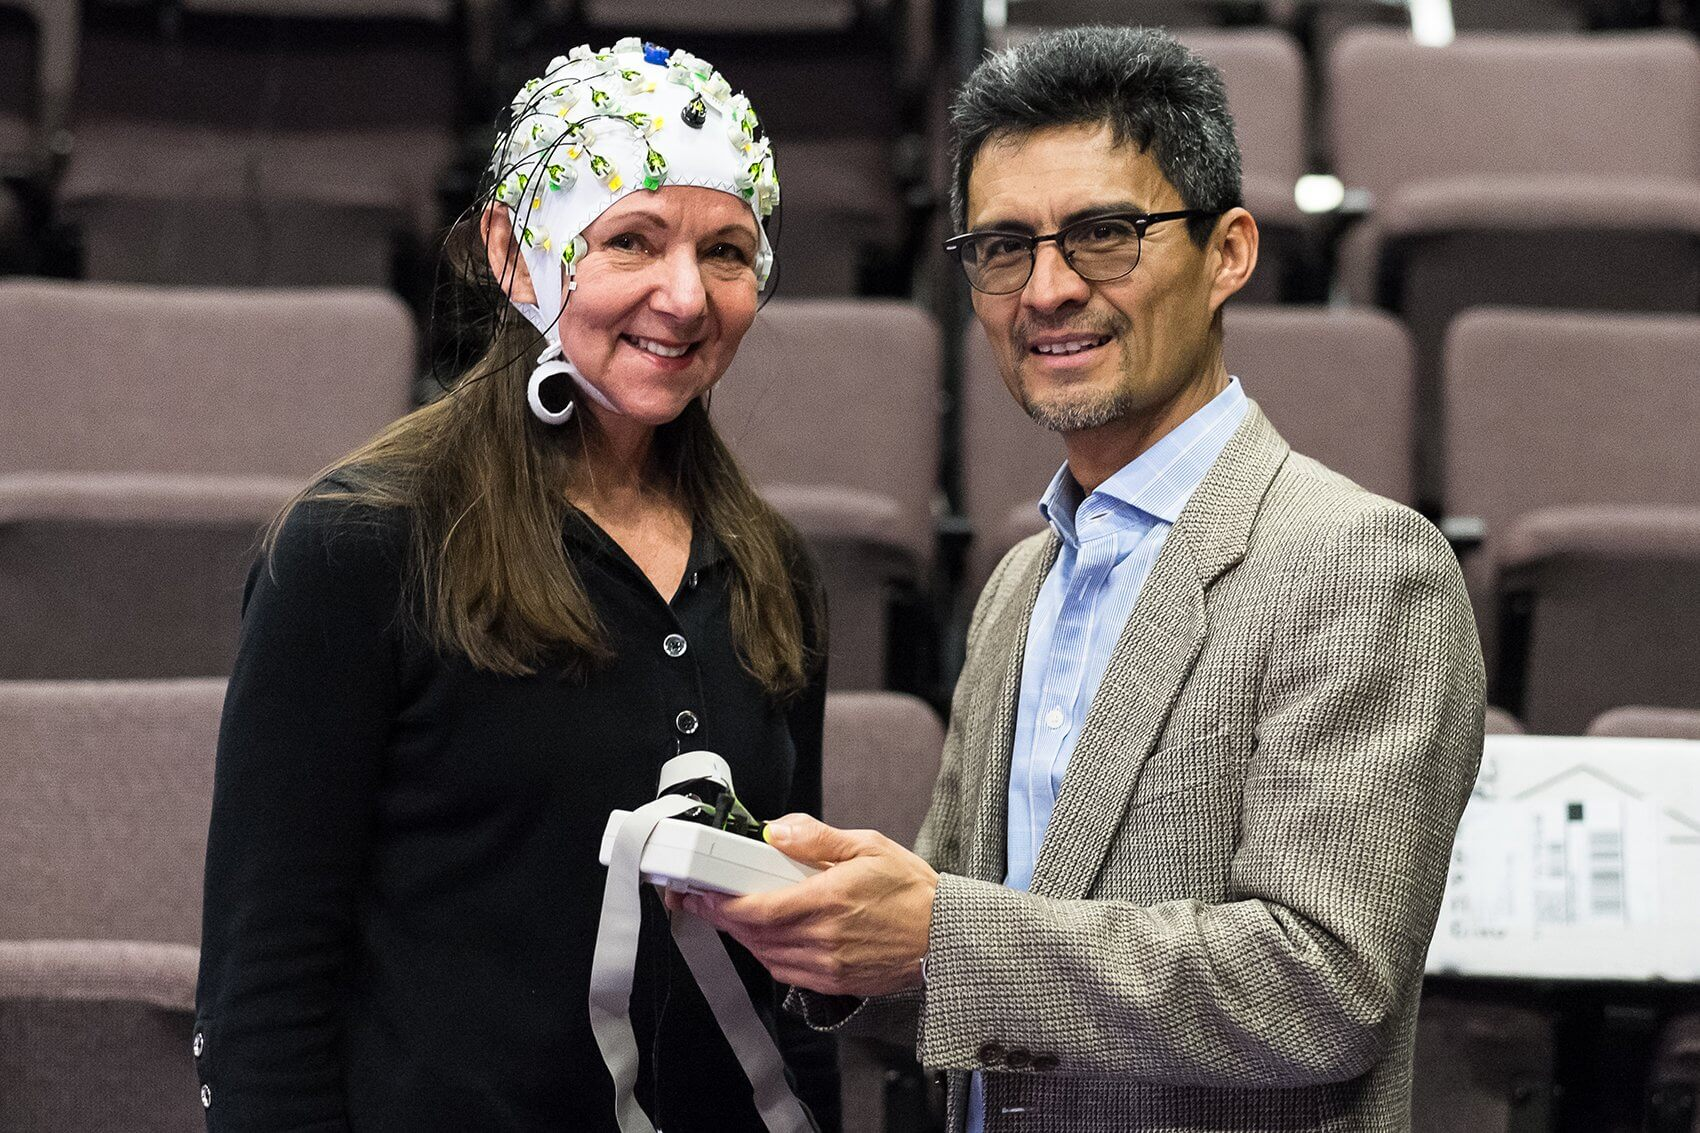 Dancer Becky Valls and University of Houston neuroscientist and engineer Jose Luis Contreras-Vidal, Ph.D. (Credit: Lynn Lane Photography)